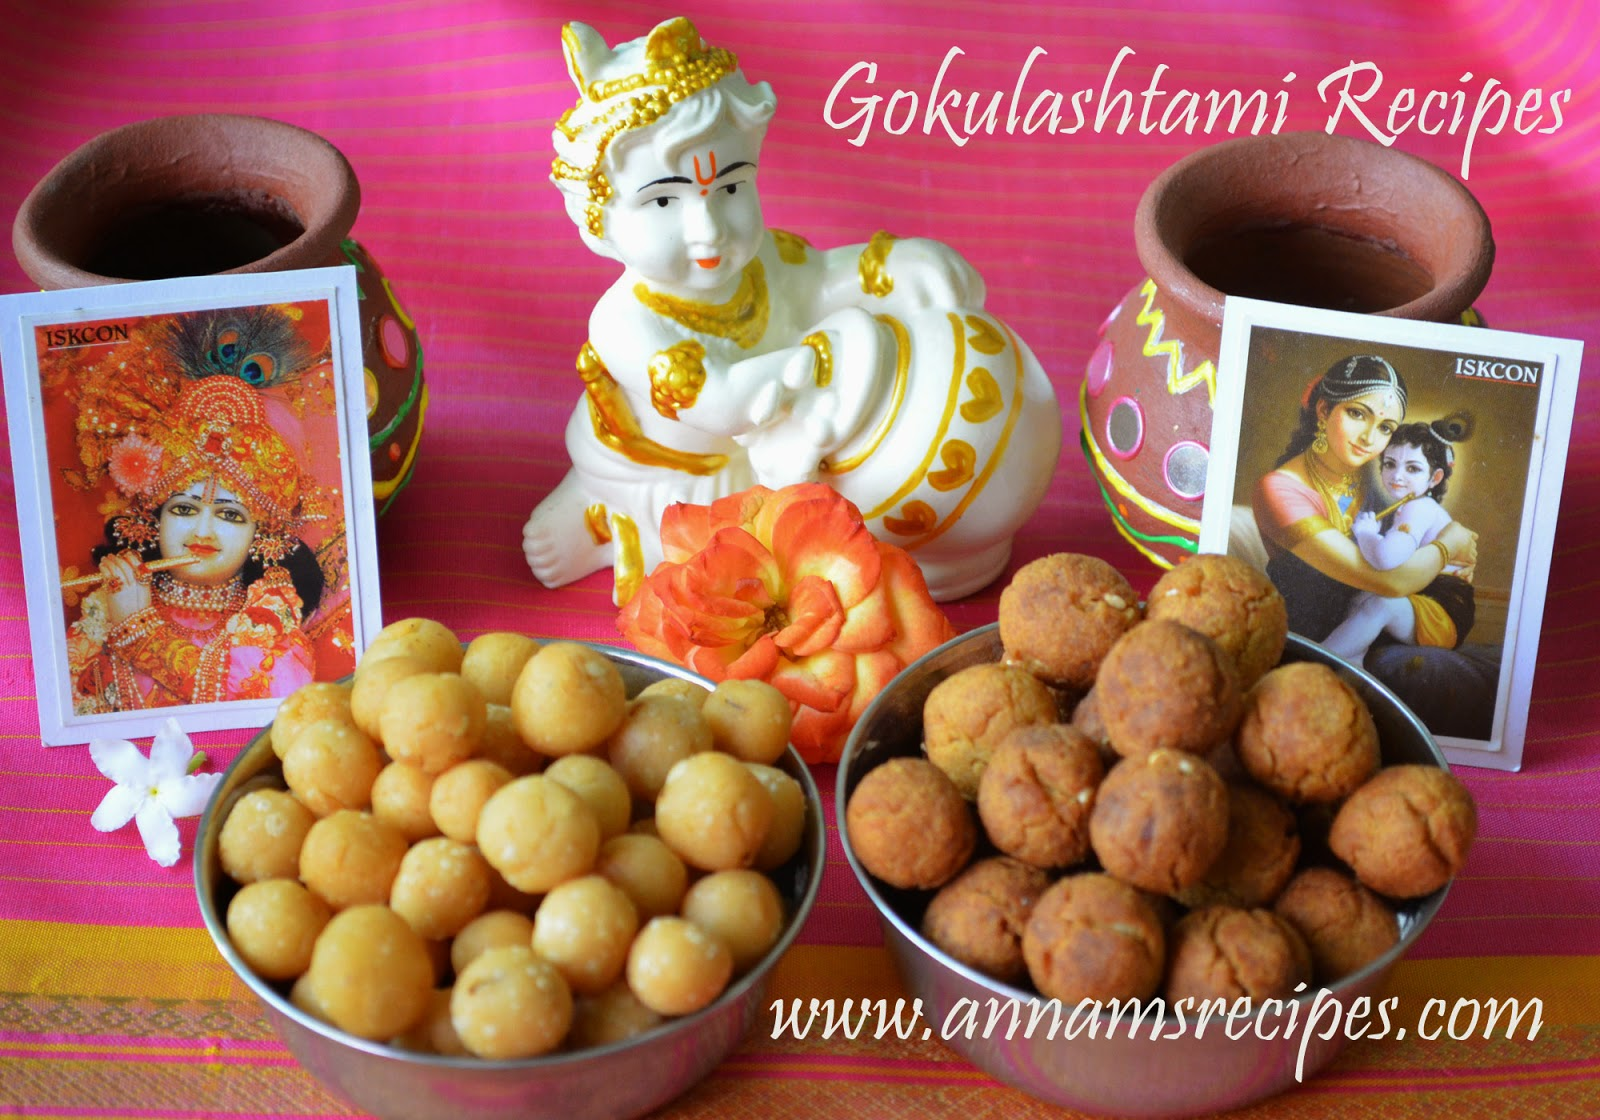 Gokulashtami Recipes